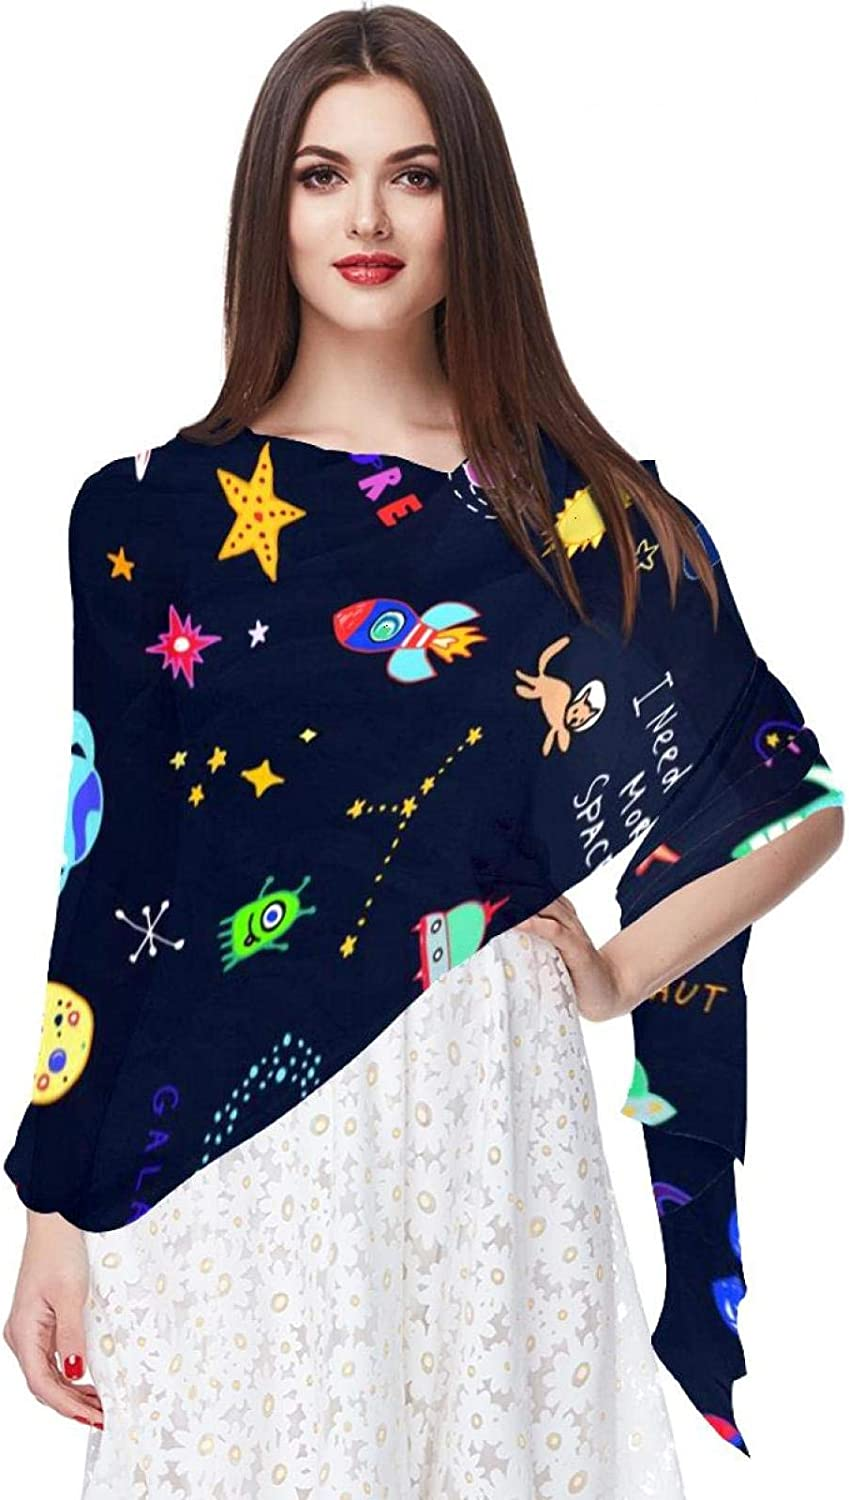 Scarfs for Women Lightweight Print Floral Pattern Scarf Shawl Fashion Scarves Sunscreen Shawls, Space Pattern